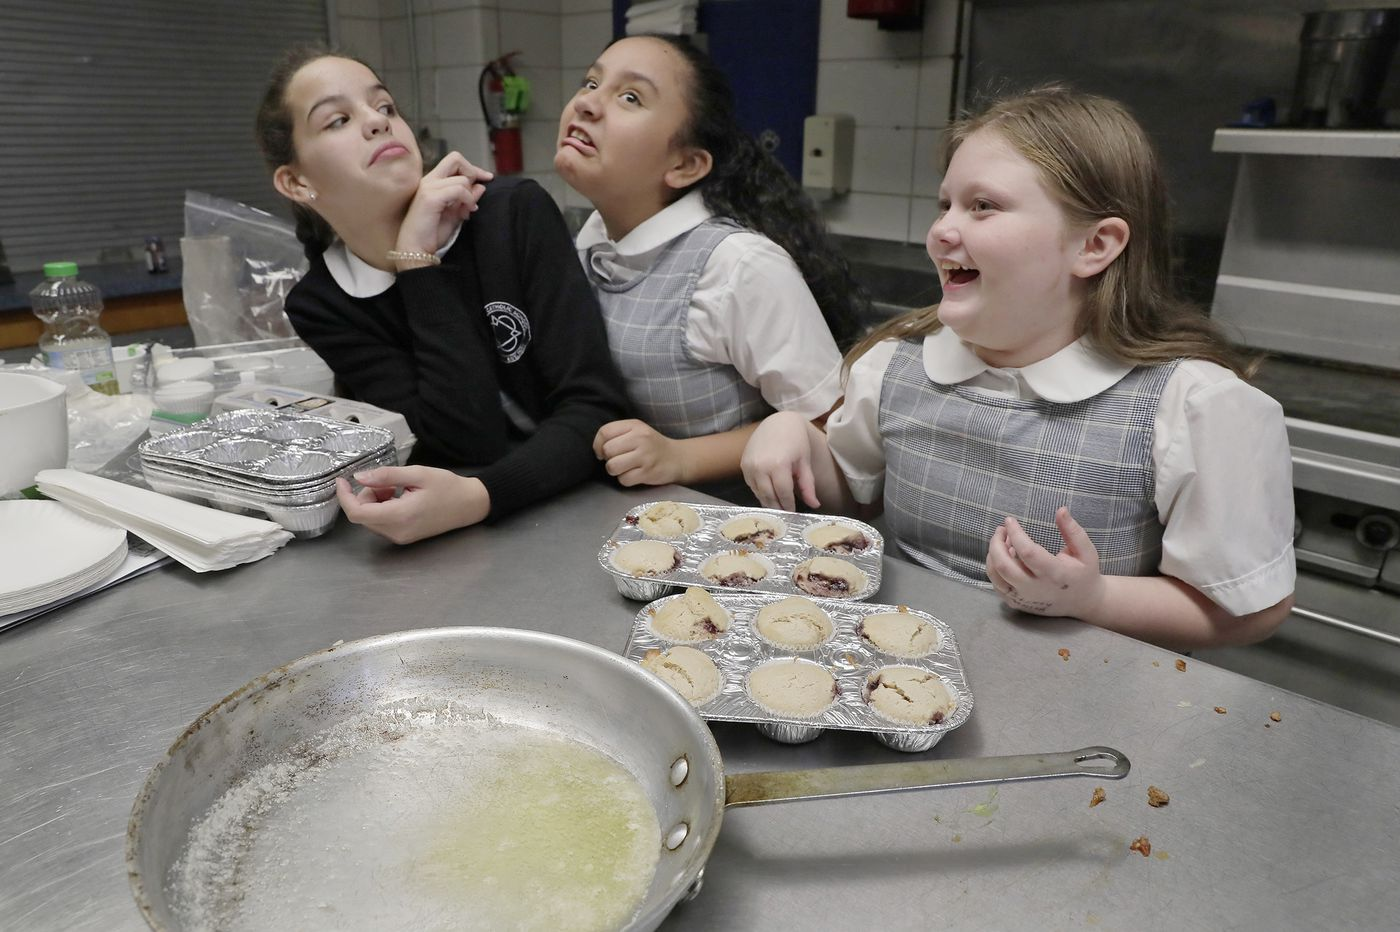 'Just chop through it, man,' and other life lessons Philly students learn in the kitchen